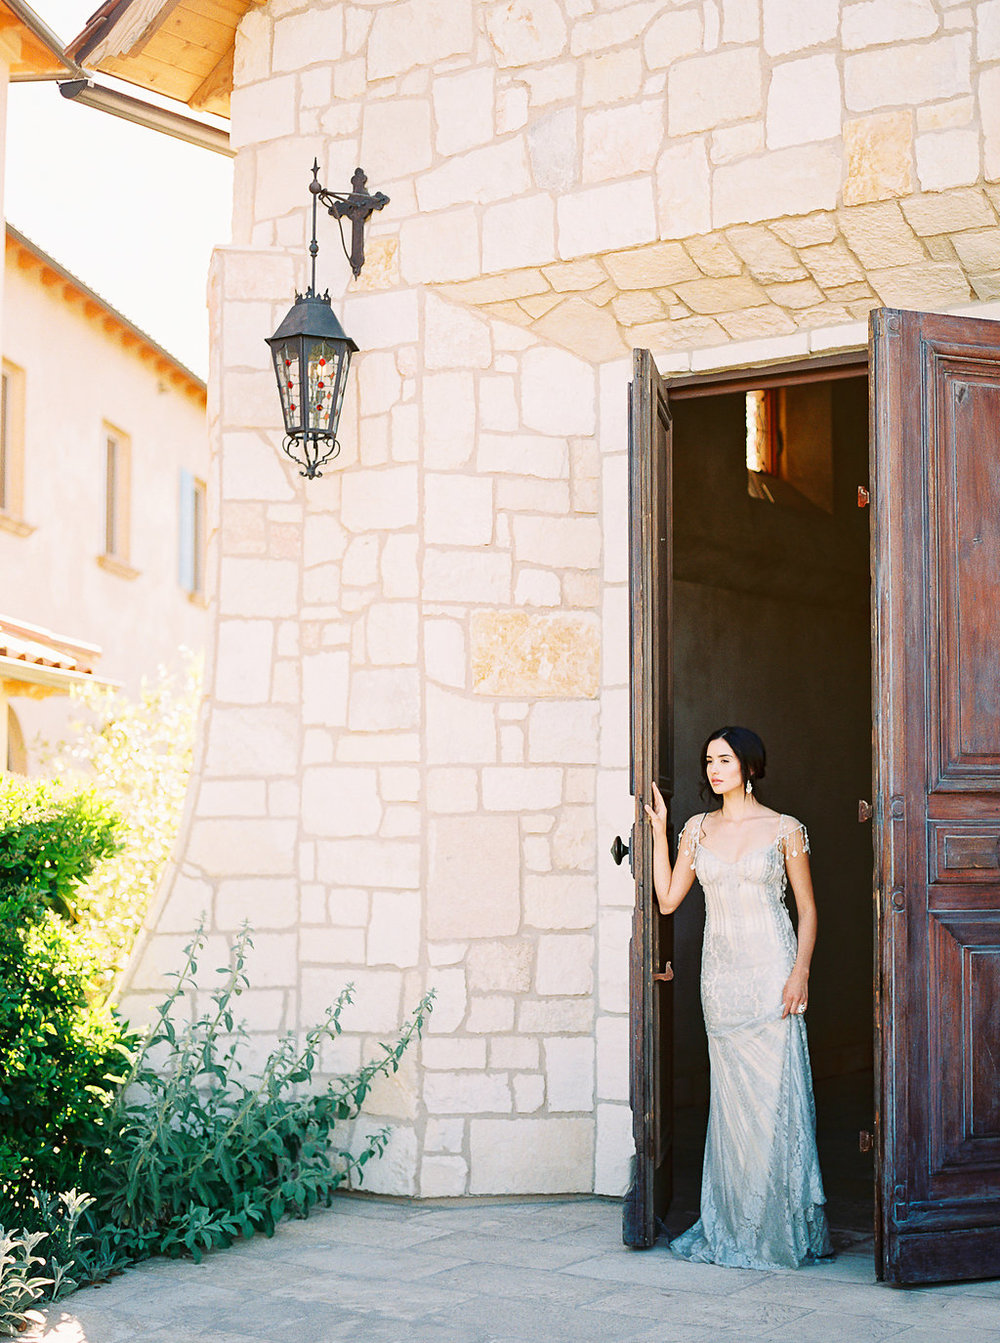 Paso Robles California - Allegretto Resort and Vineyards - Bridal Session - fine art film photographer Tanja Kibogo13.JPG